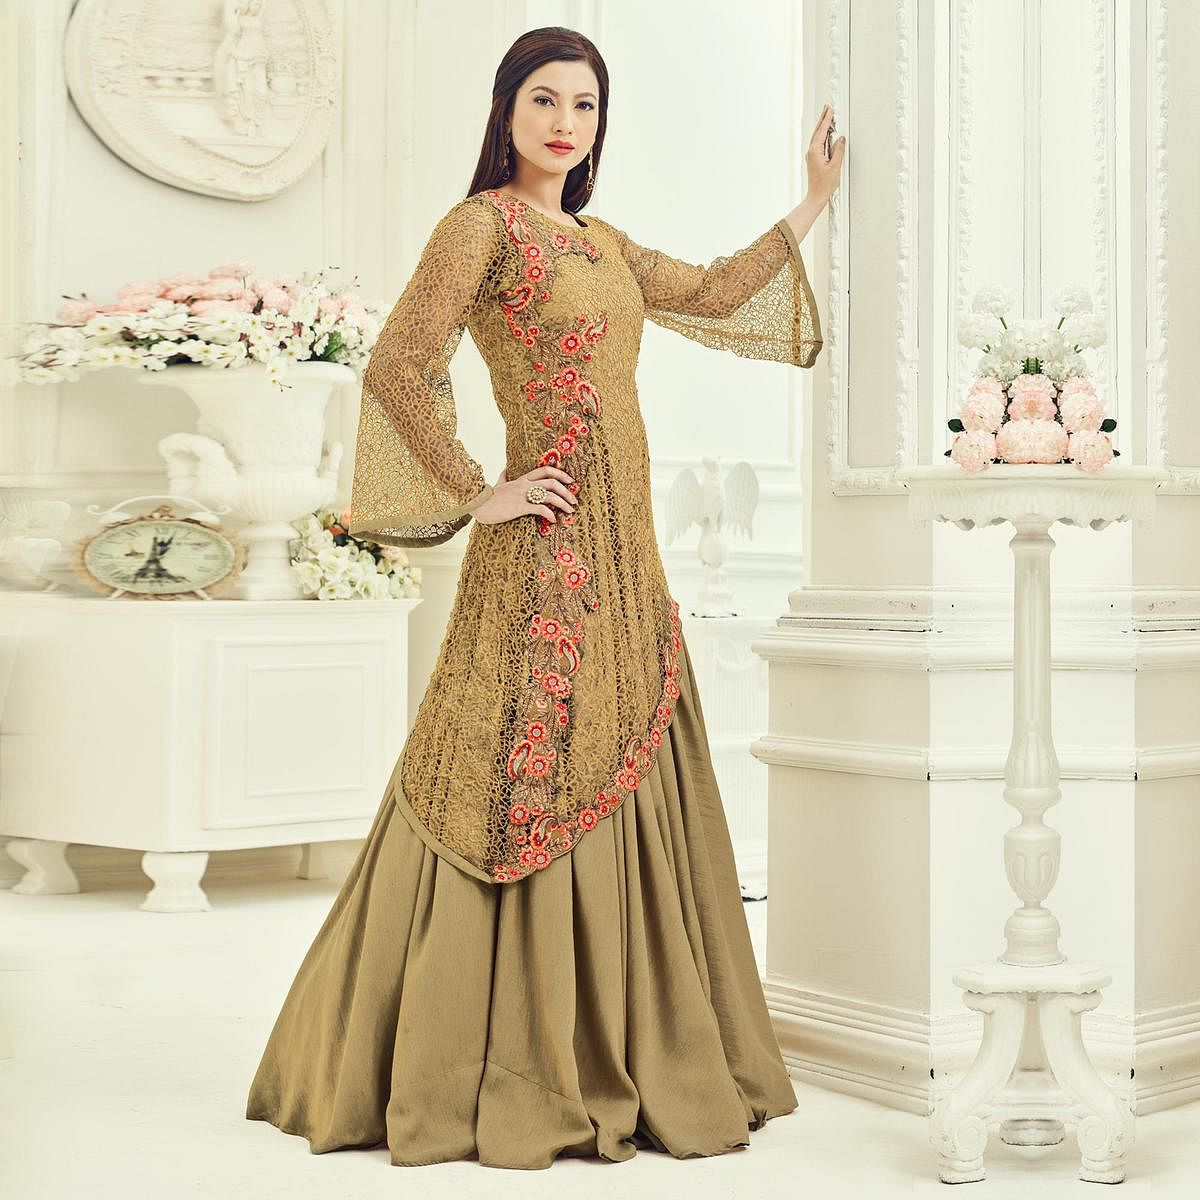 Beige Net Fabric Kameez with Lehenga & Dupatta